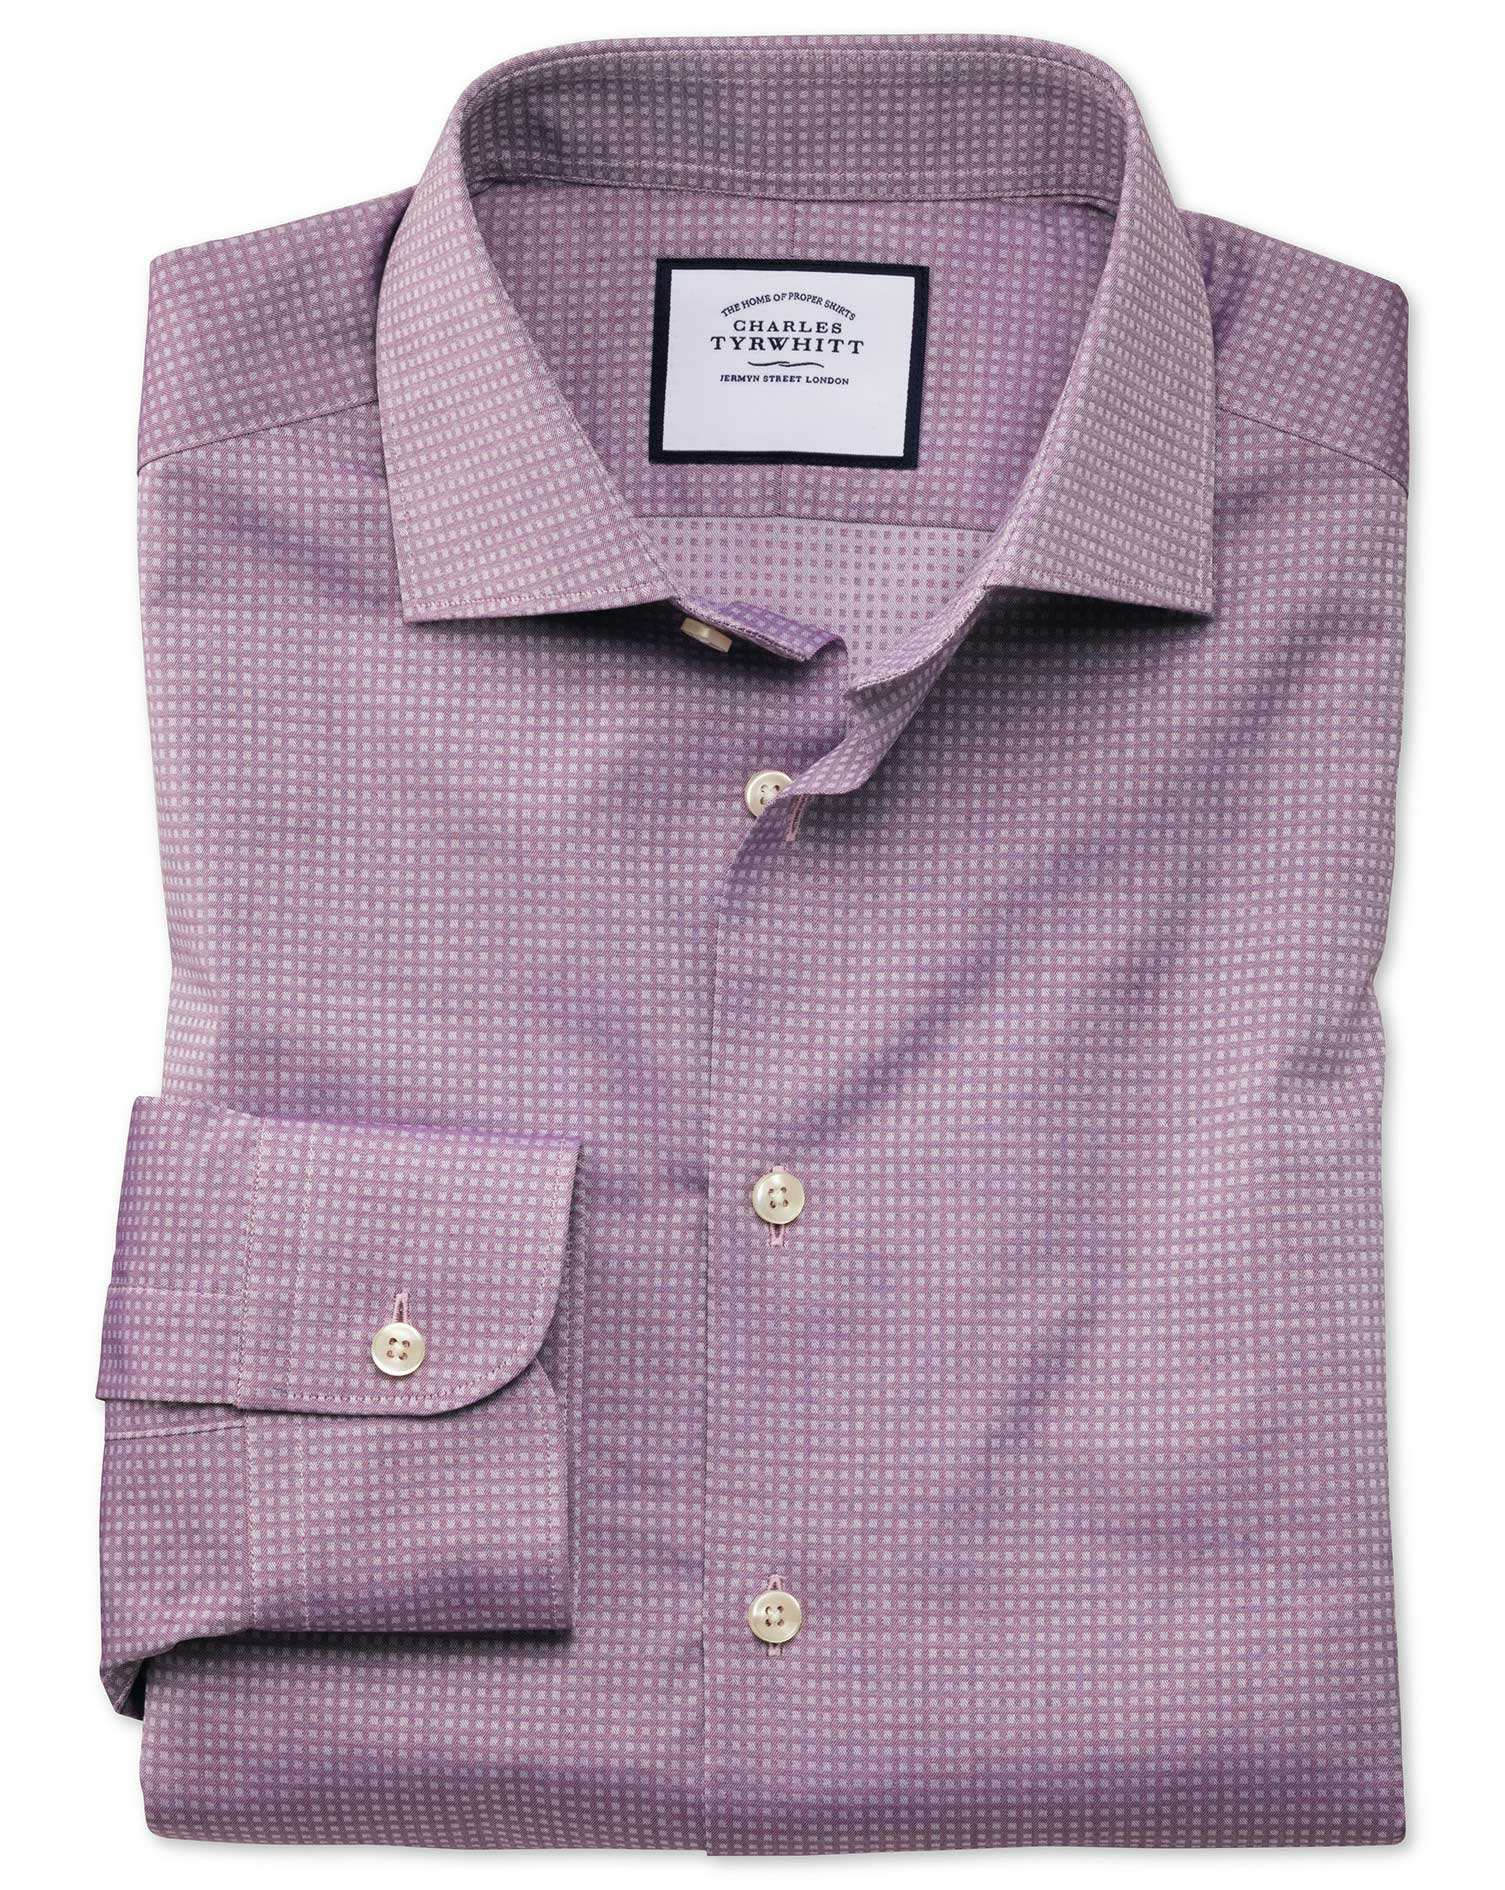 Classic Fit Business Casual Purple Square Texture Egyptian Cotton Formal Shirt Single Cuff Size 19/3